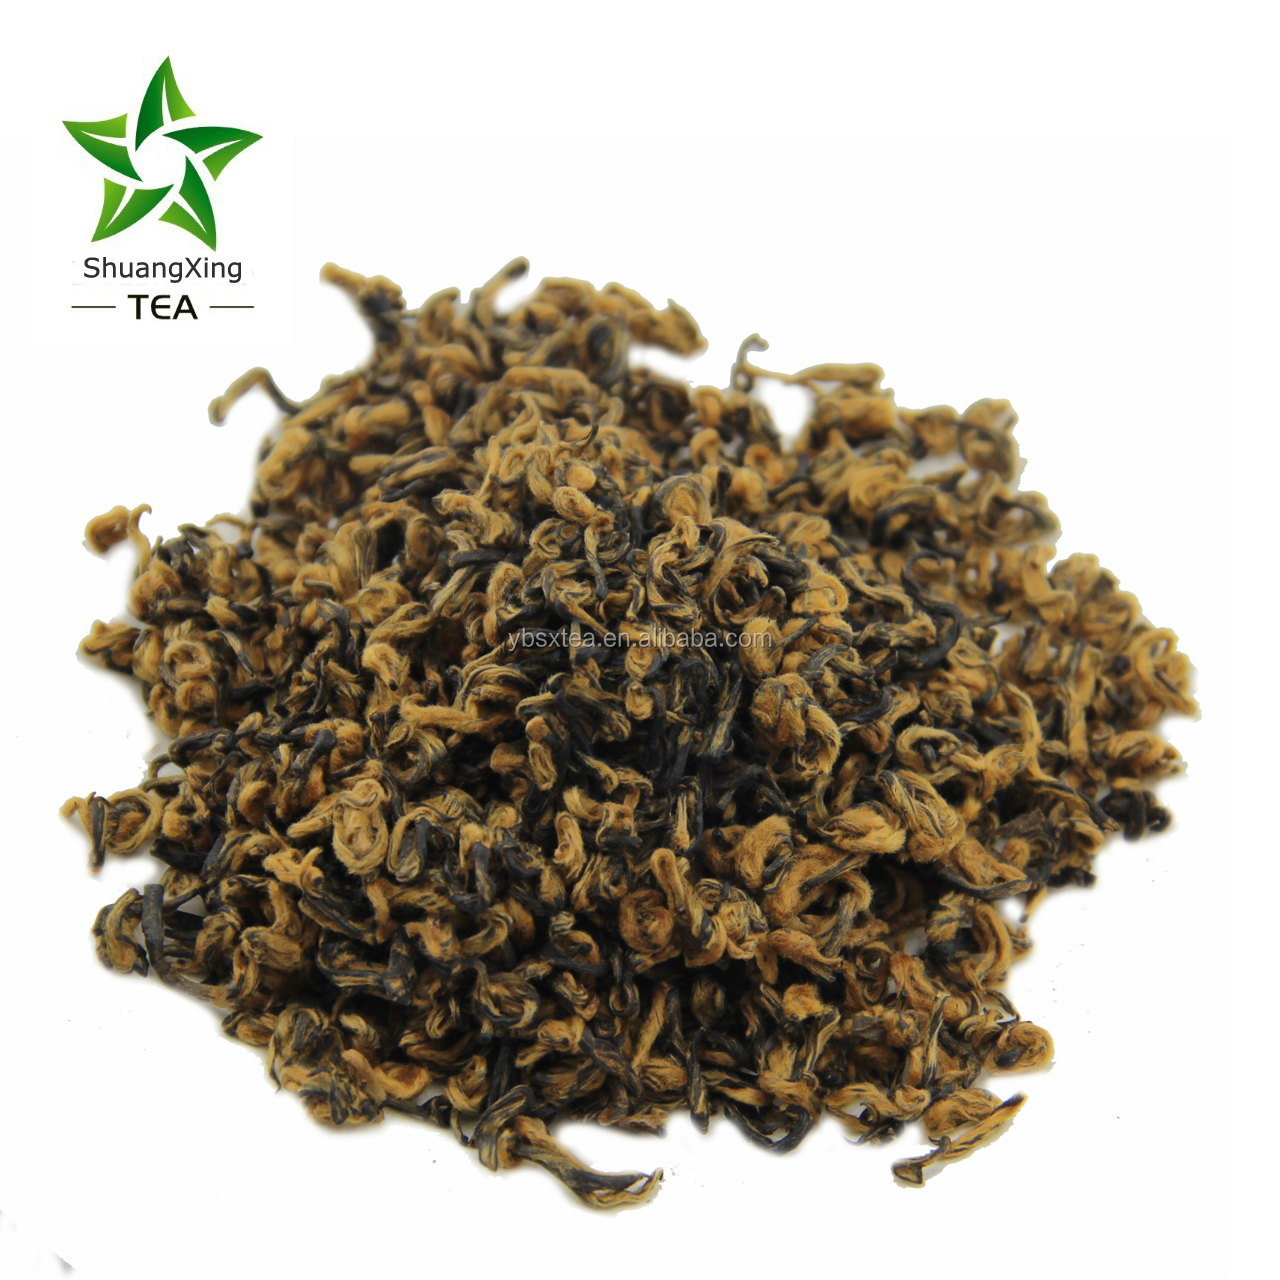 Jin Luo Top quality black tea China hotsale black tea single bud black tea